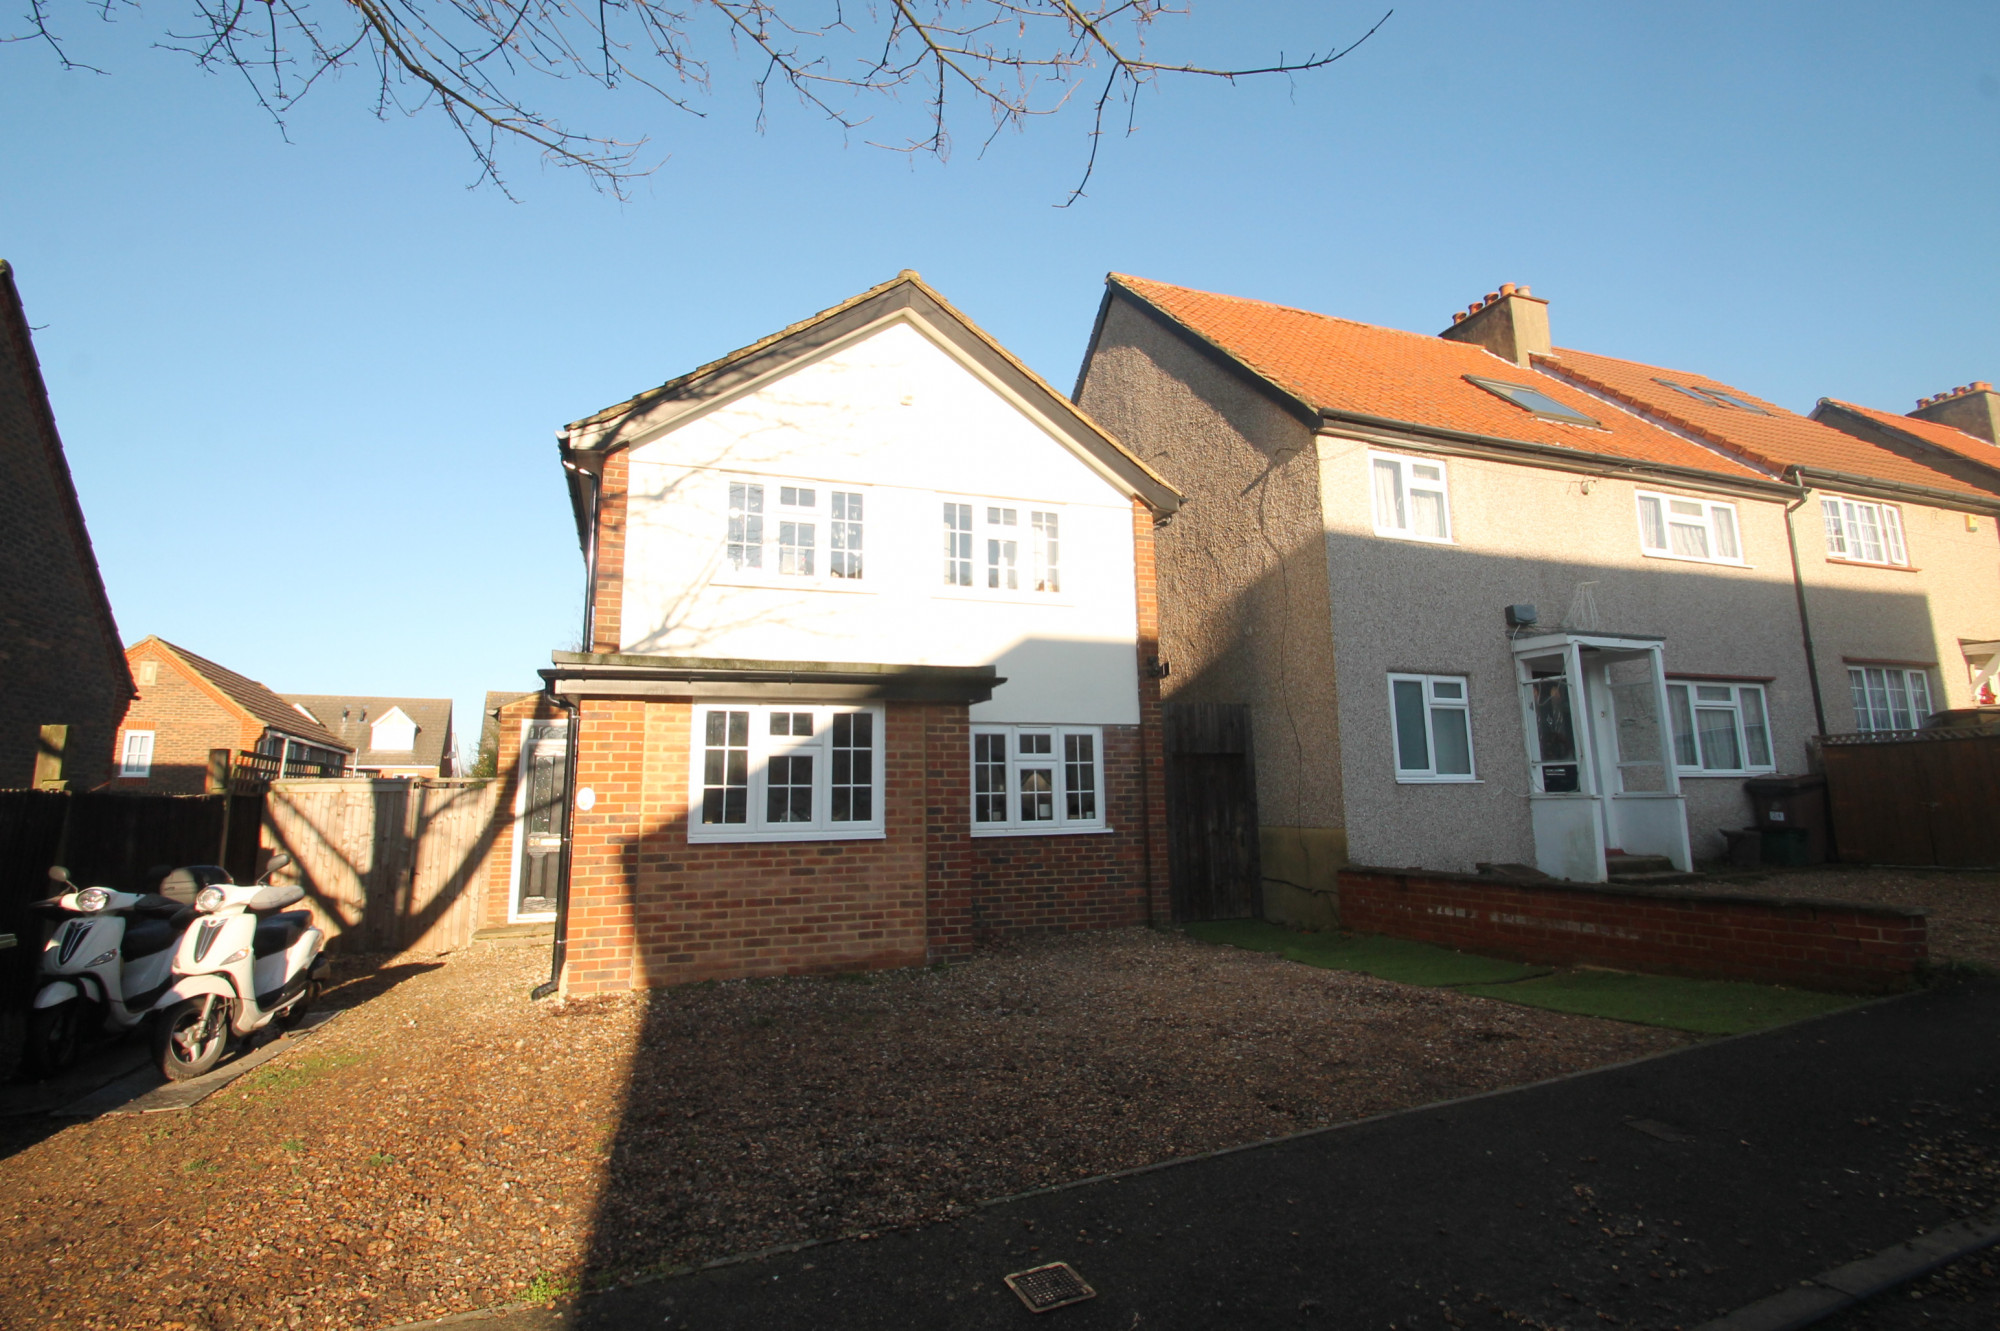 Image of Property for Sale in Sutton